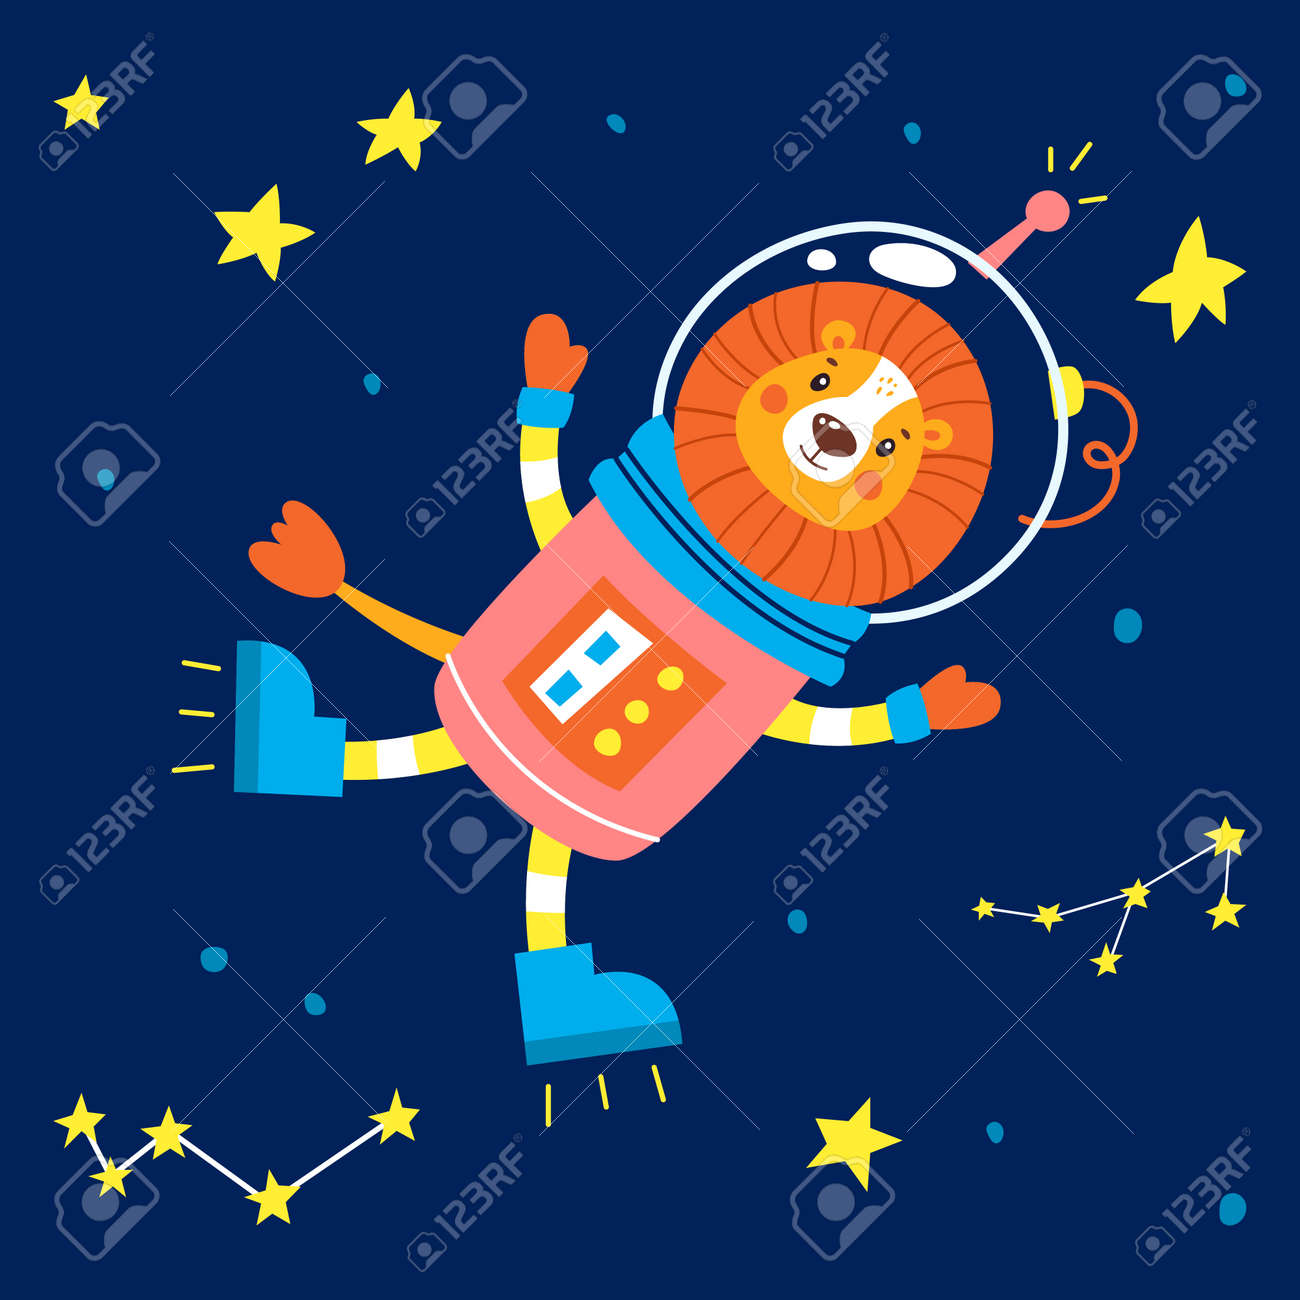 Animals in space. Vector illustration on a blue background. - 169771681